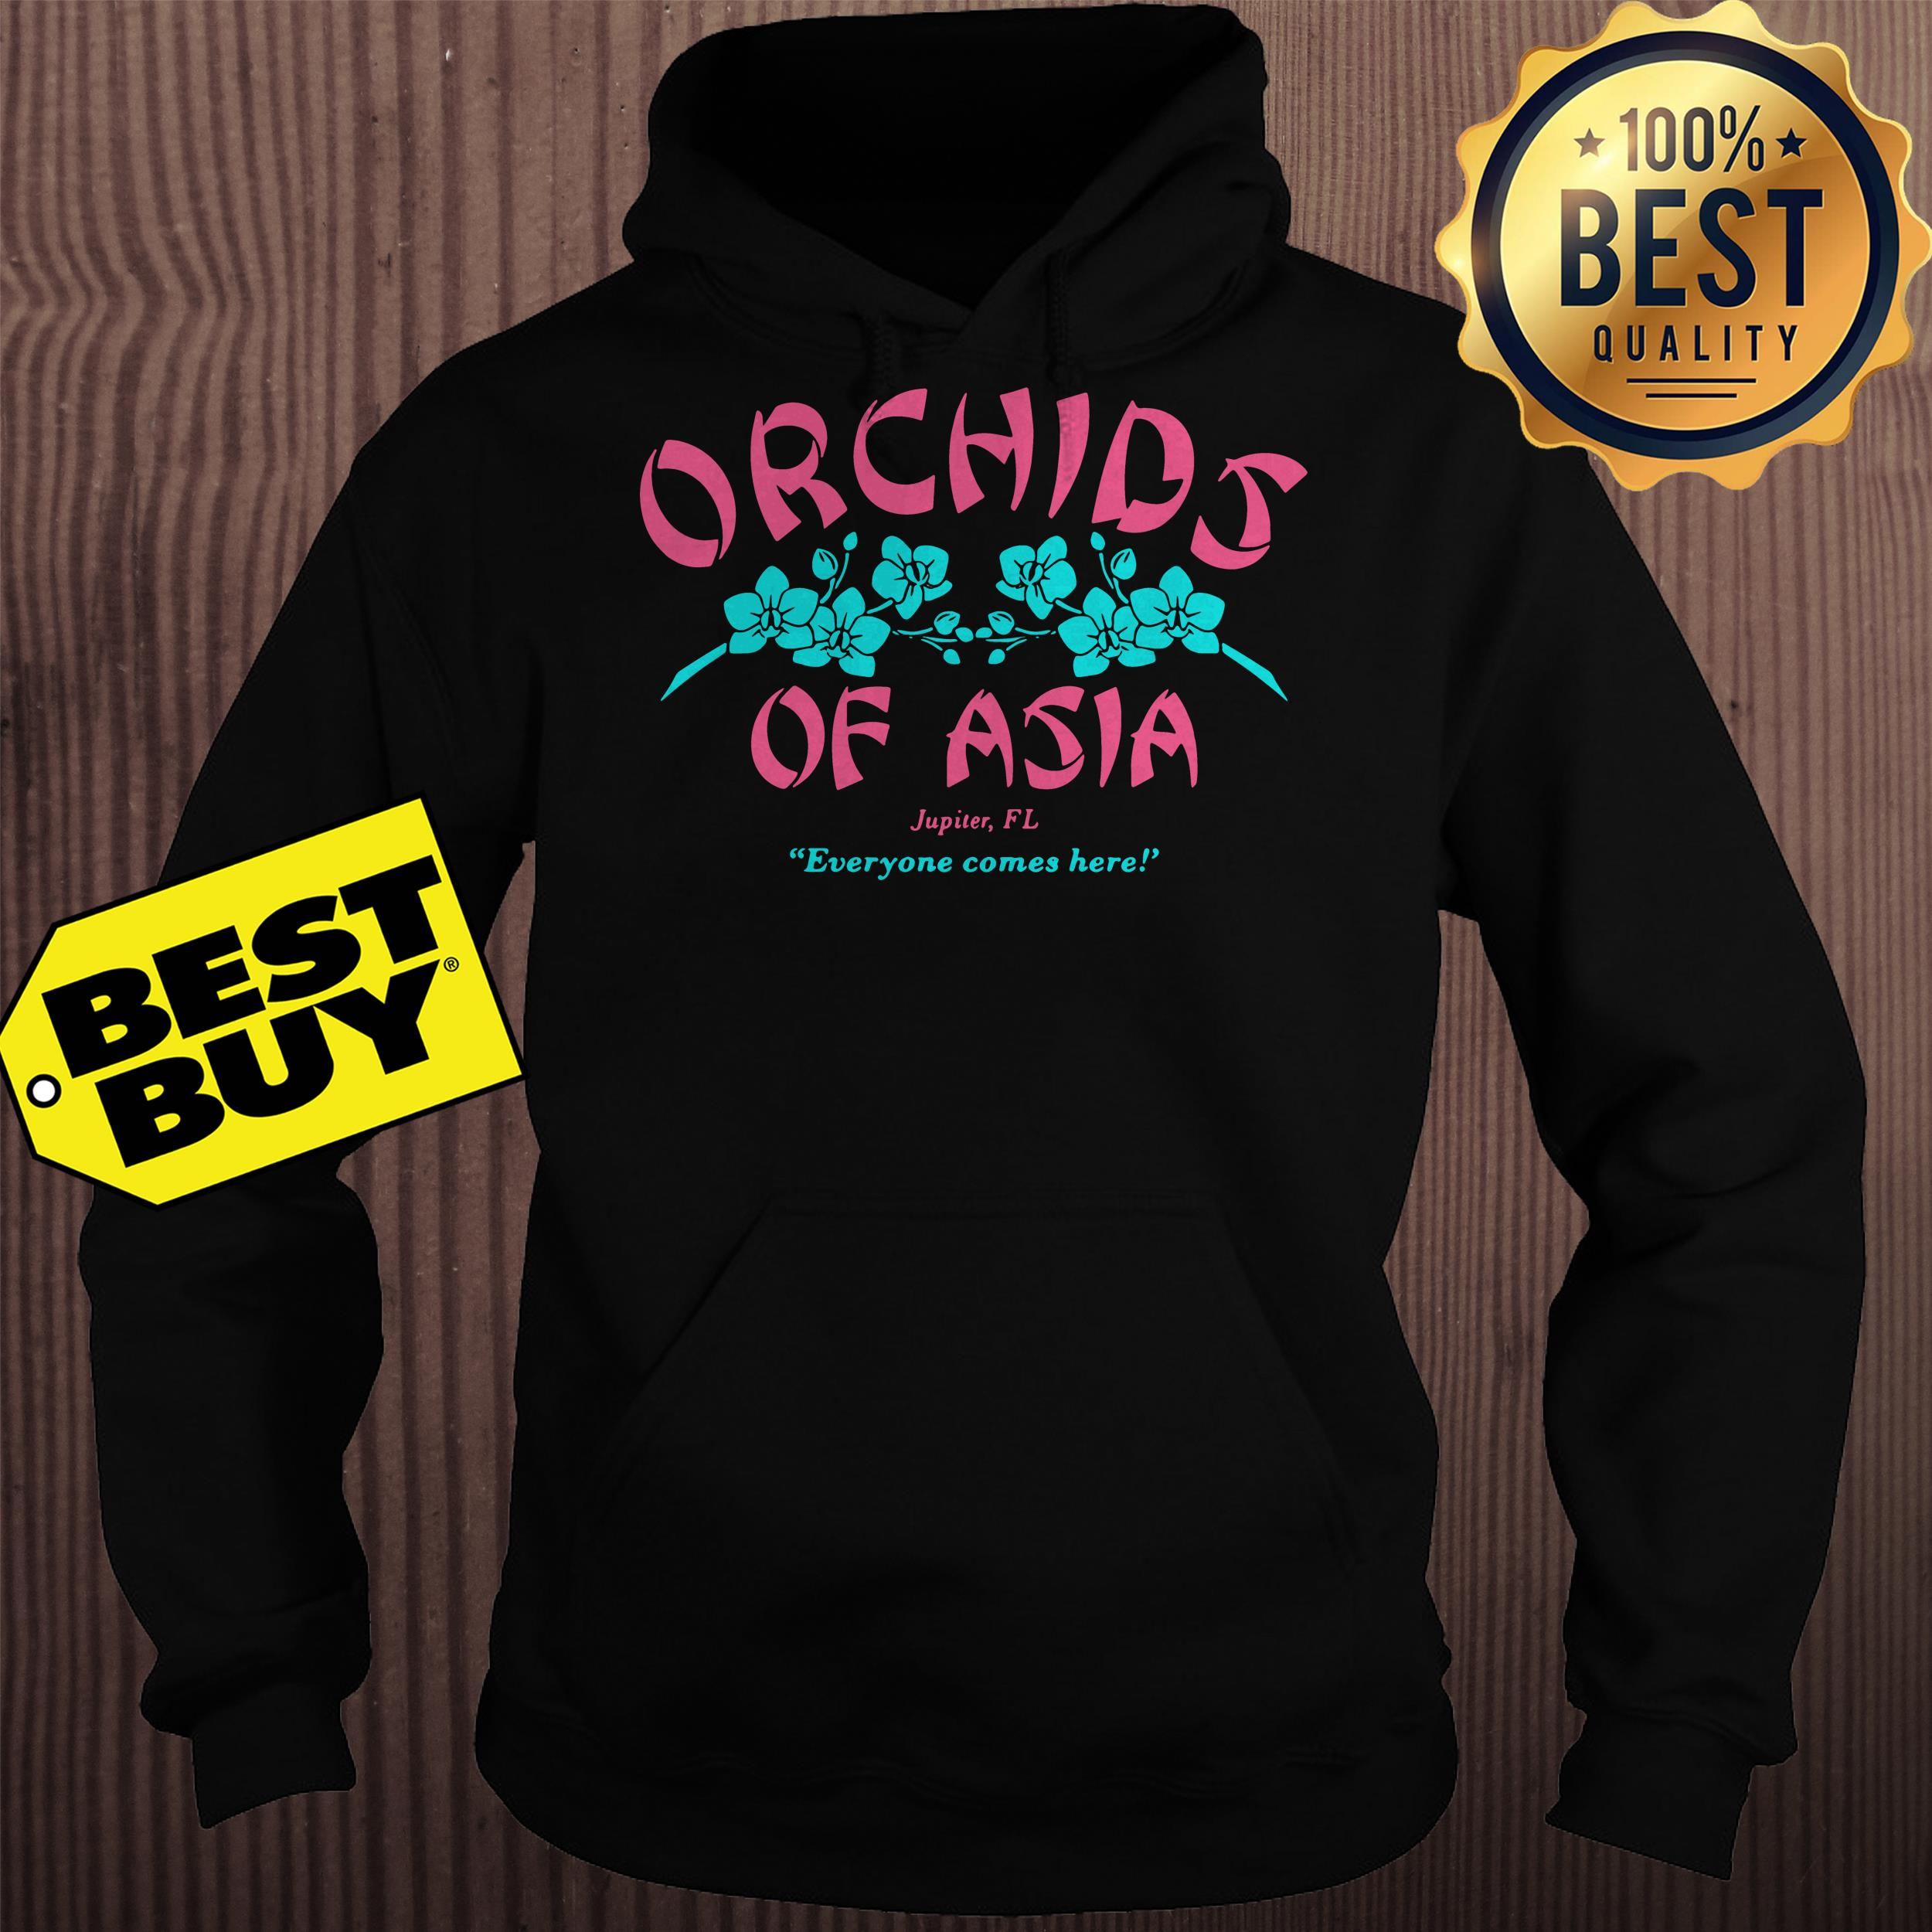 Orchids of Asia Jupiter FL everyone comes here hoodie